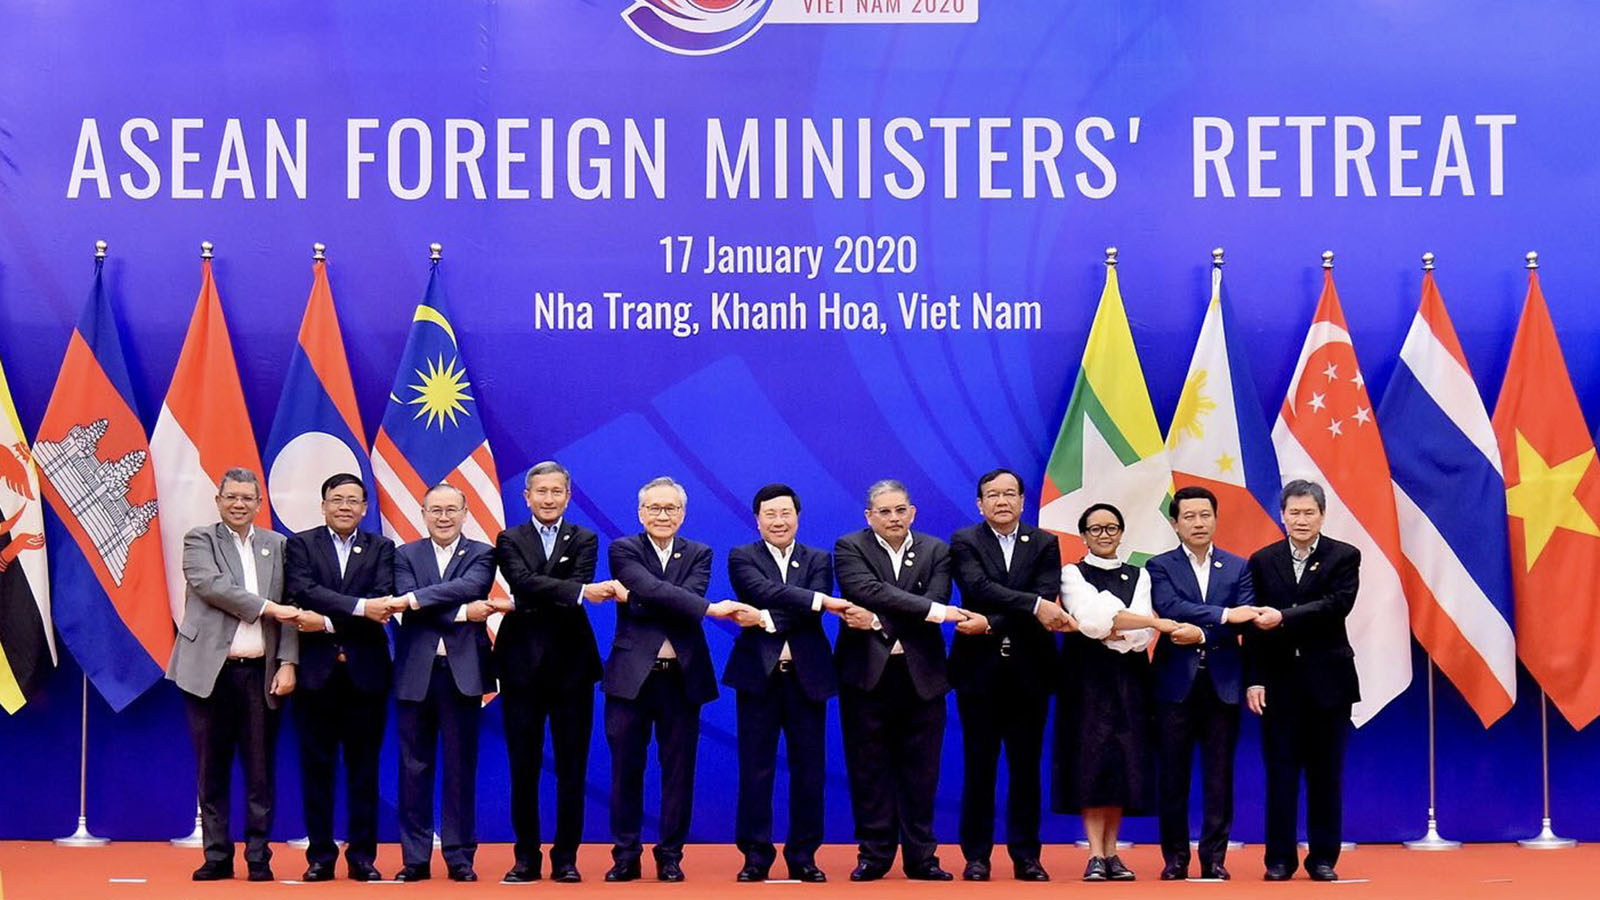 Union Minister U Kyaw Tin poses for a group photo with Ministers from ASEAN countries at the ASEAN Foreign Ministers' Retreat in Nha Trang, Viet Nam.Photo: MNA